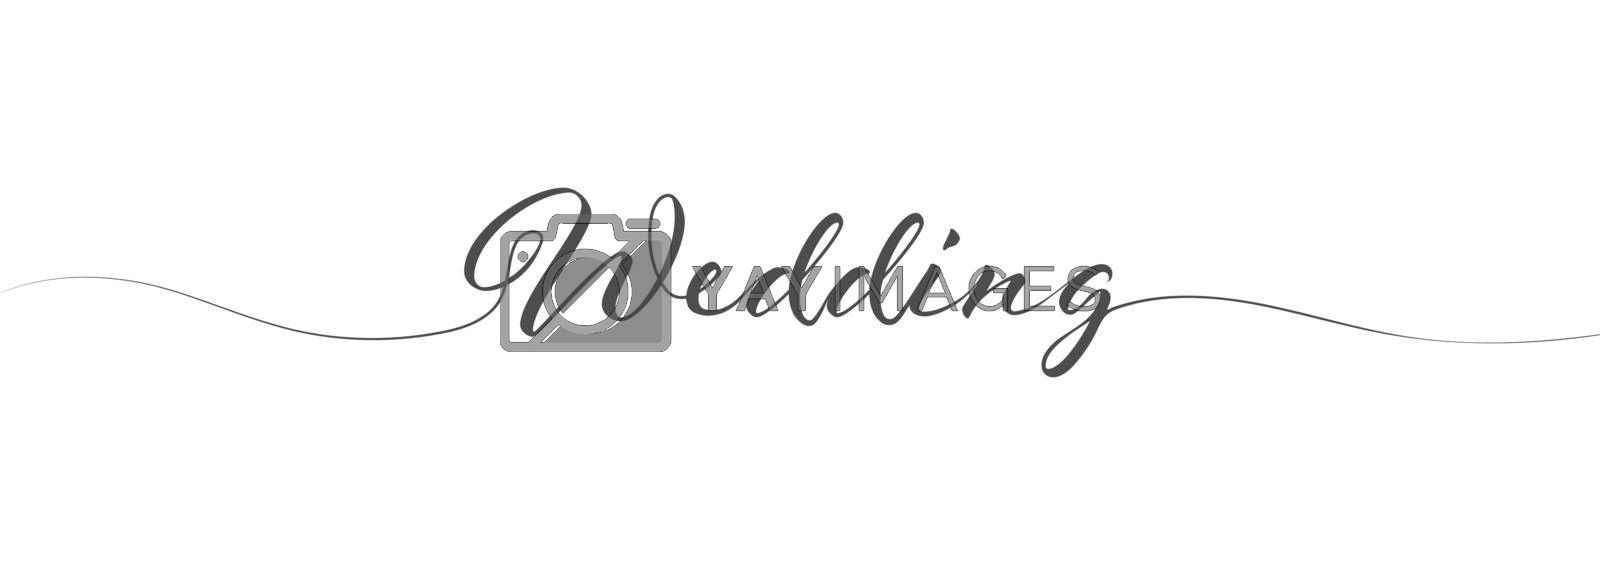 Calligraphy lettering WEDDING in one solid line on a white background for postcards, posters, invitations and creative design. Simple Style